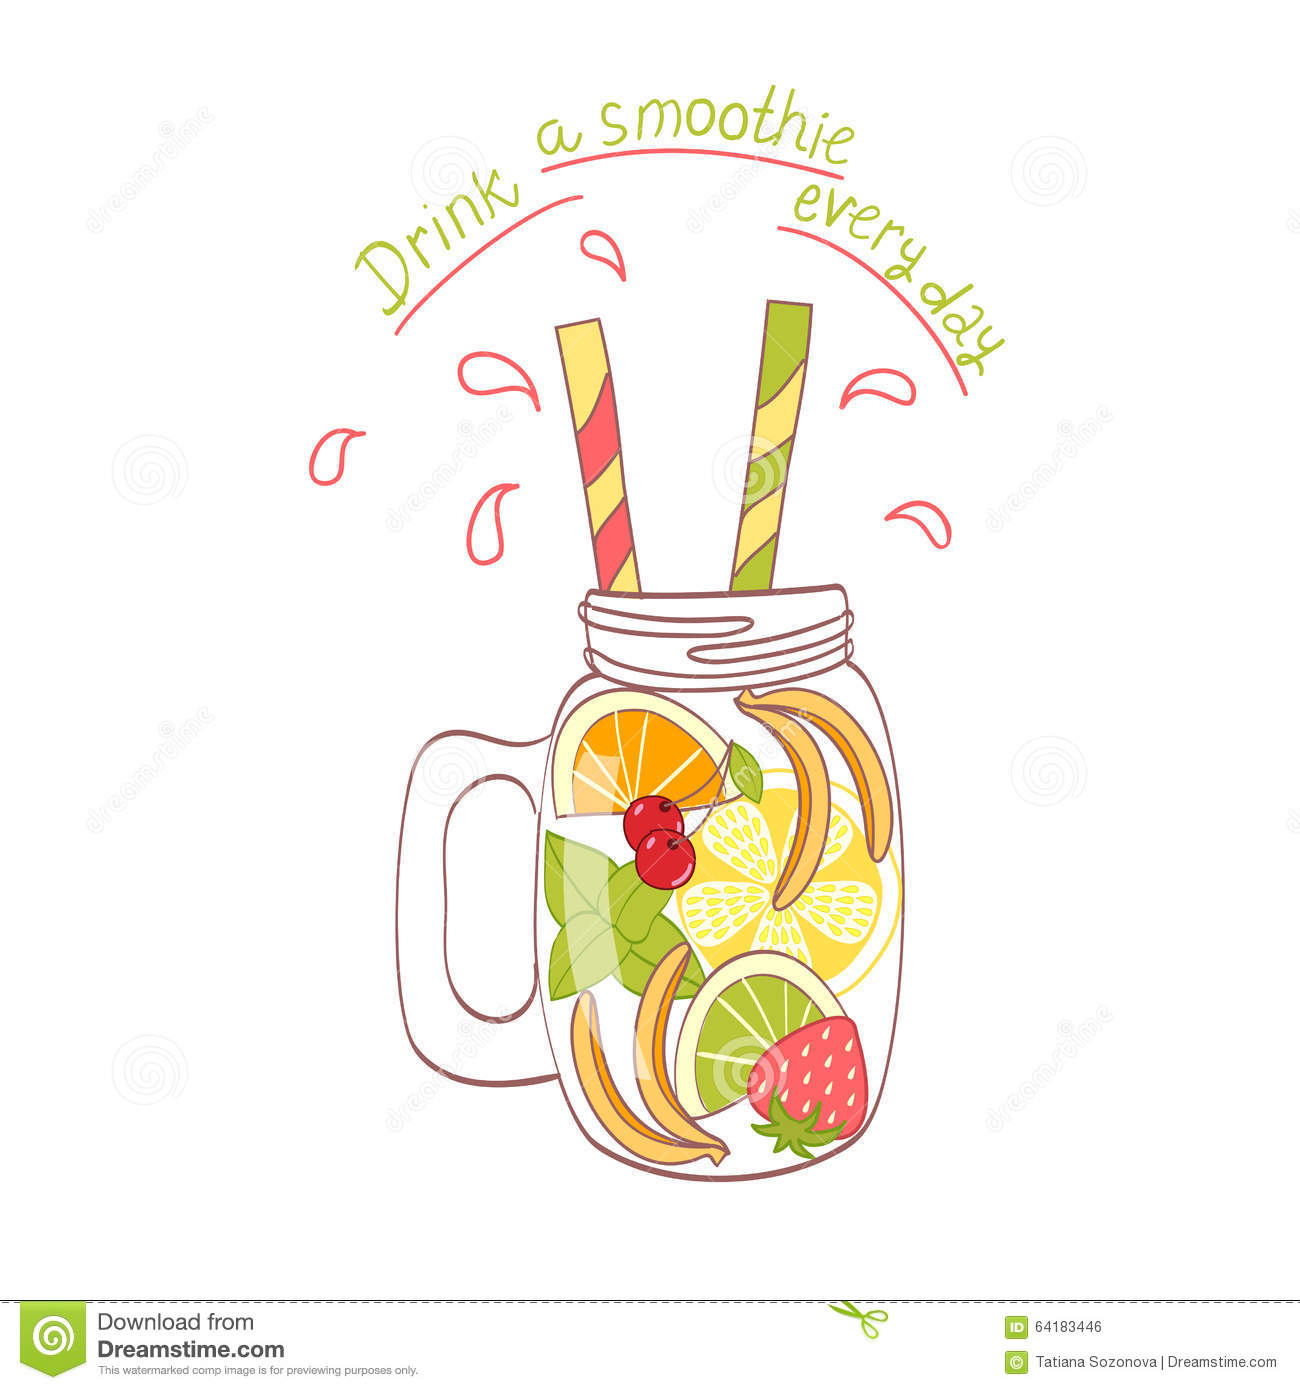 Mason jar with straw clipart picture freeuse library Mason Jar With Straw Clipart Collection #31197 - Clipartimage.com picture freeuse library